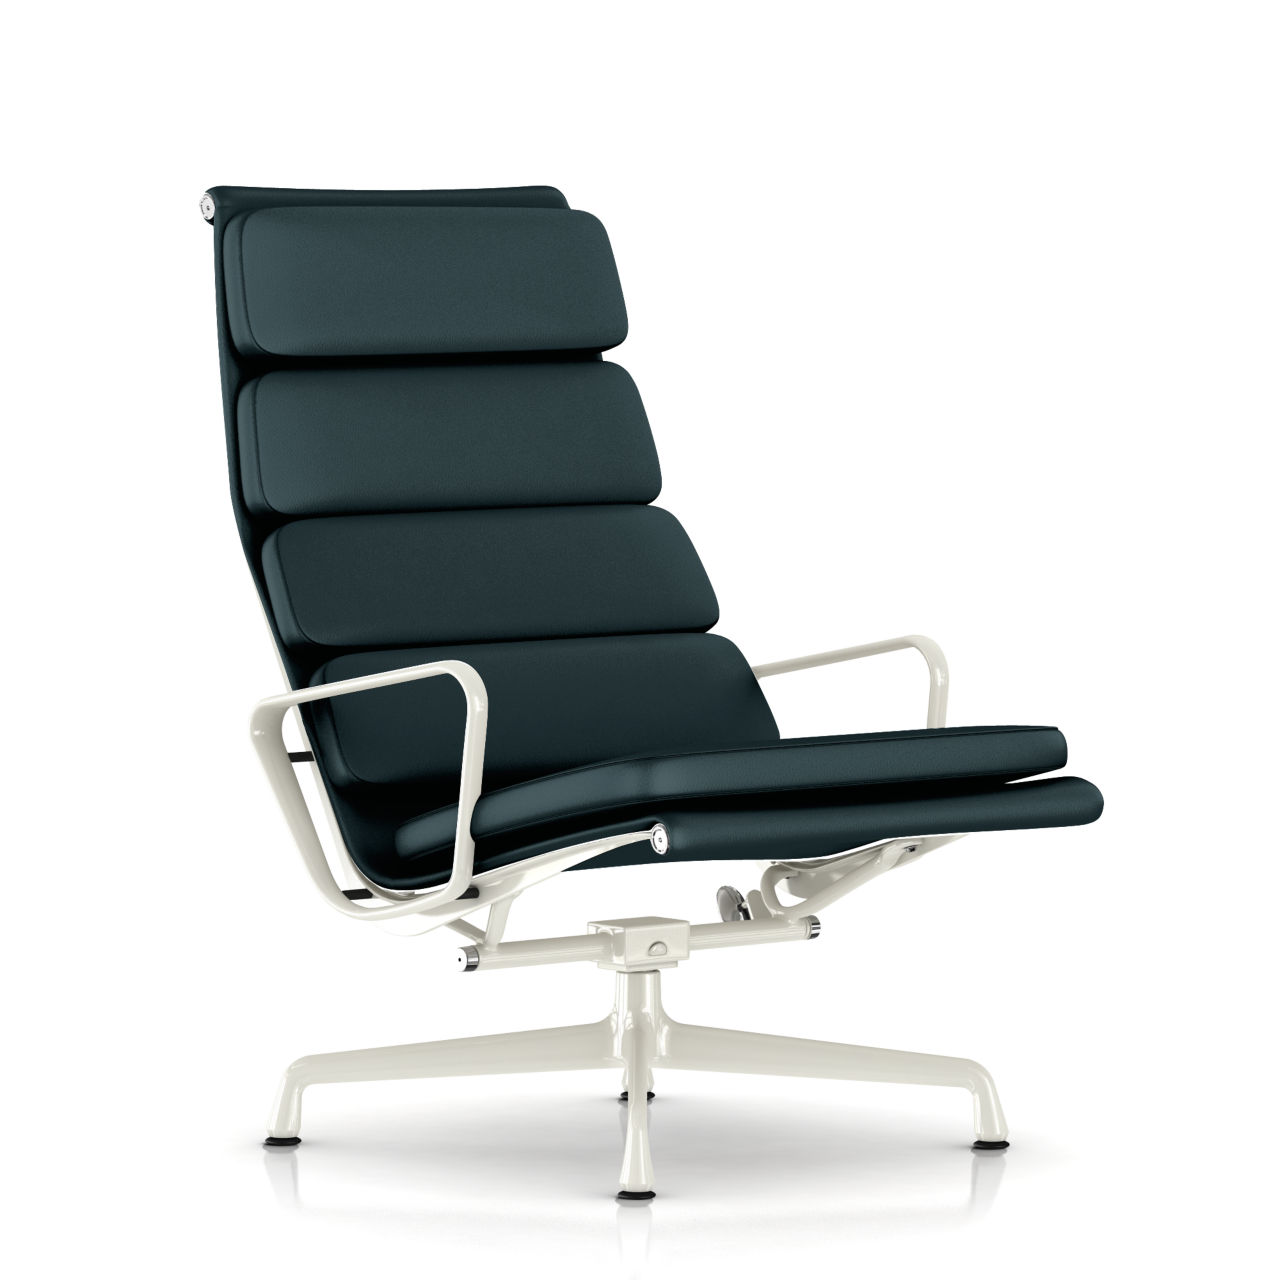 Eames Soft Pad Lounge Chair in Deep Sea Leather by Herman Miller